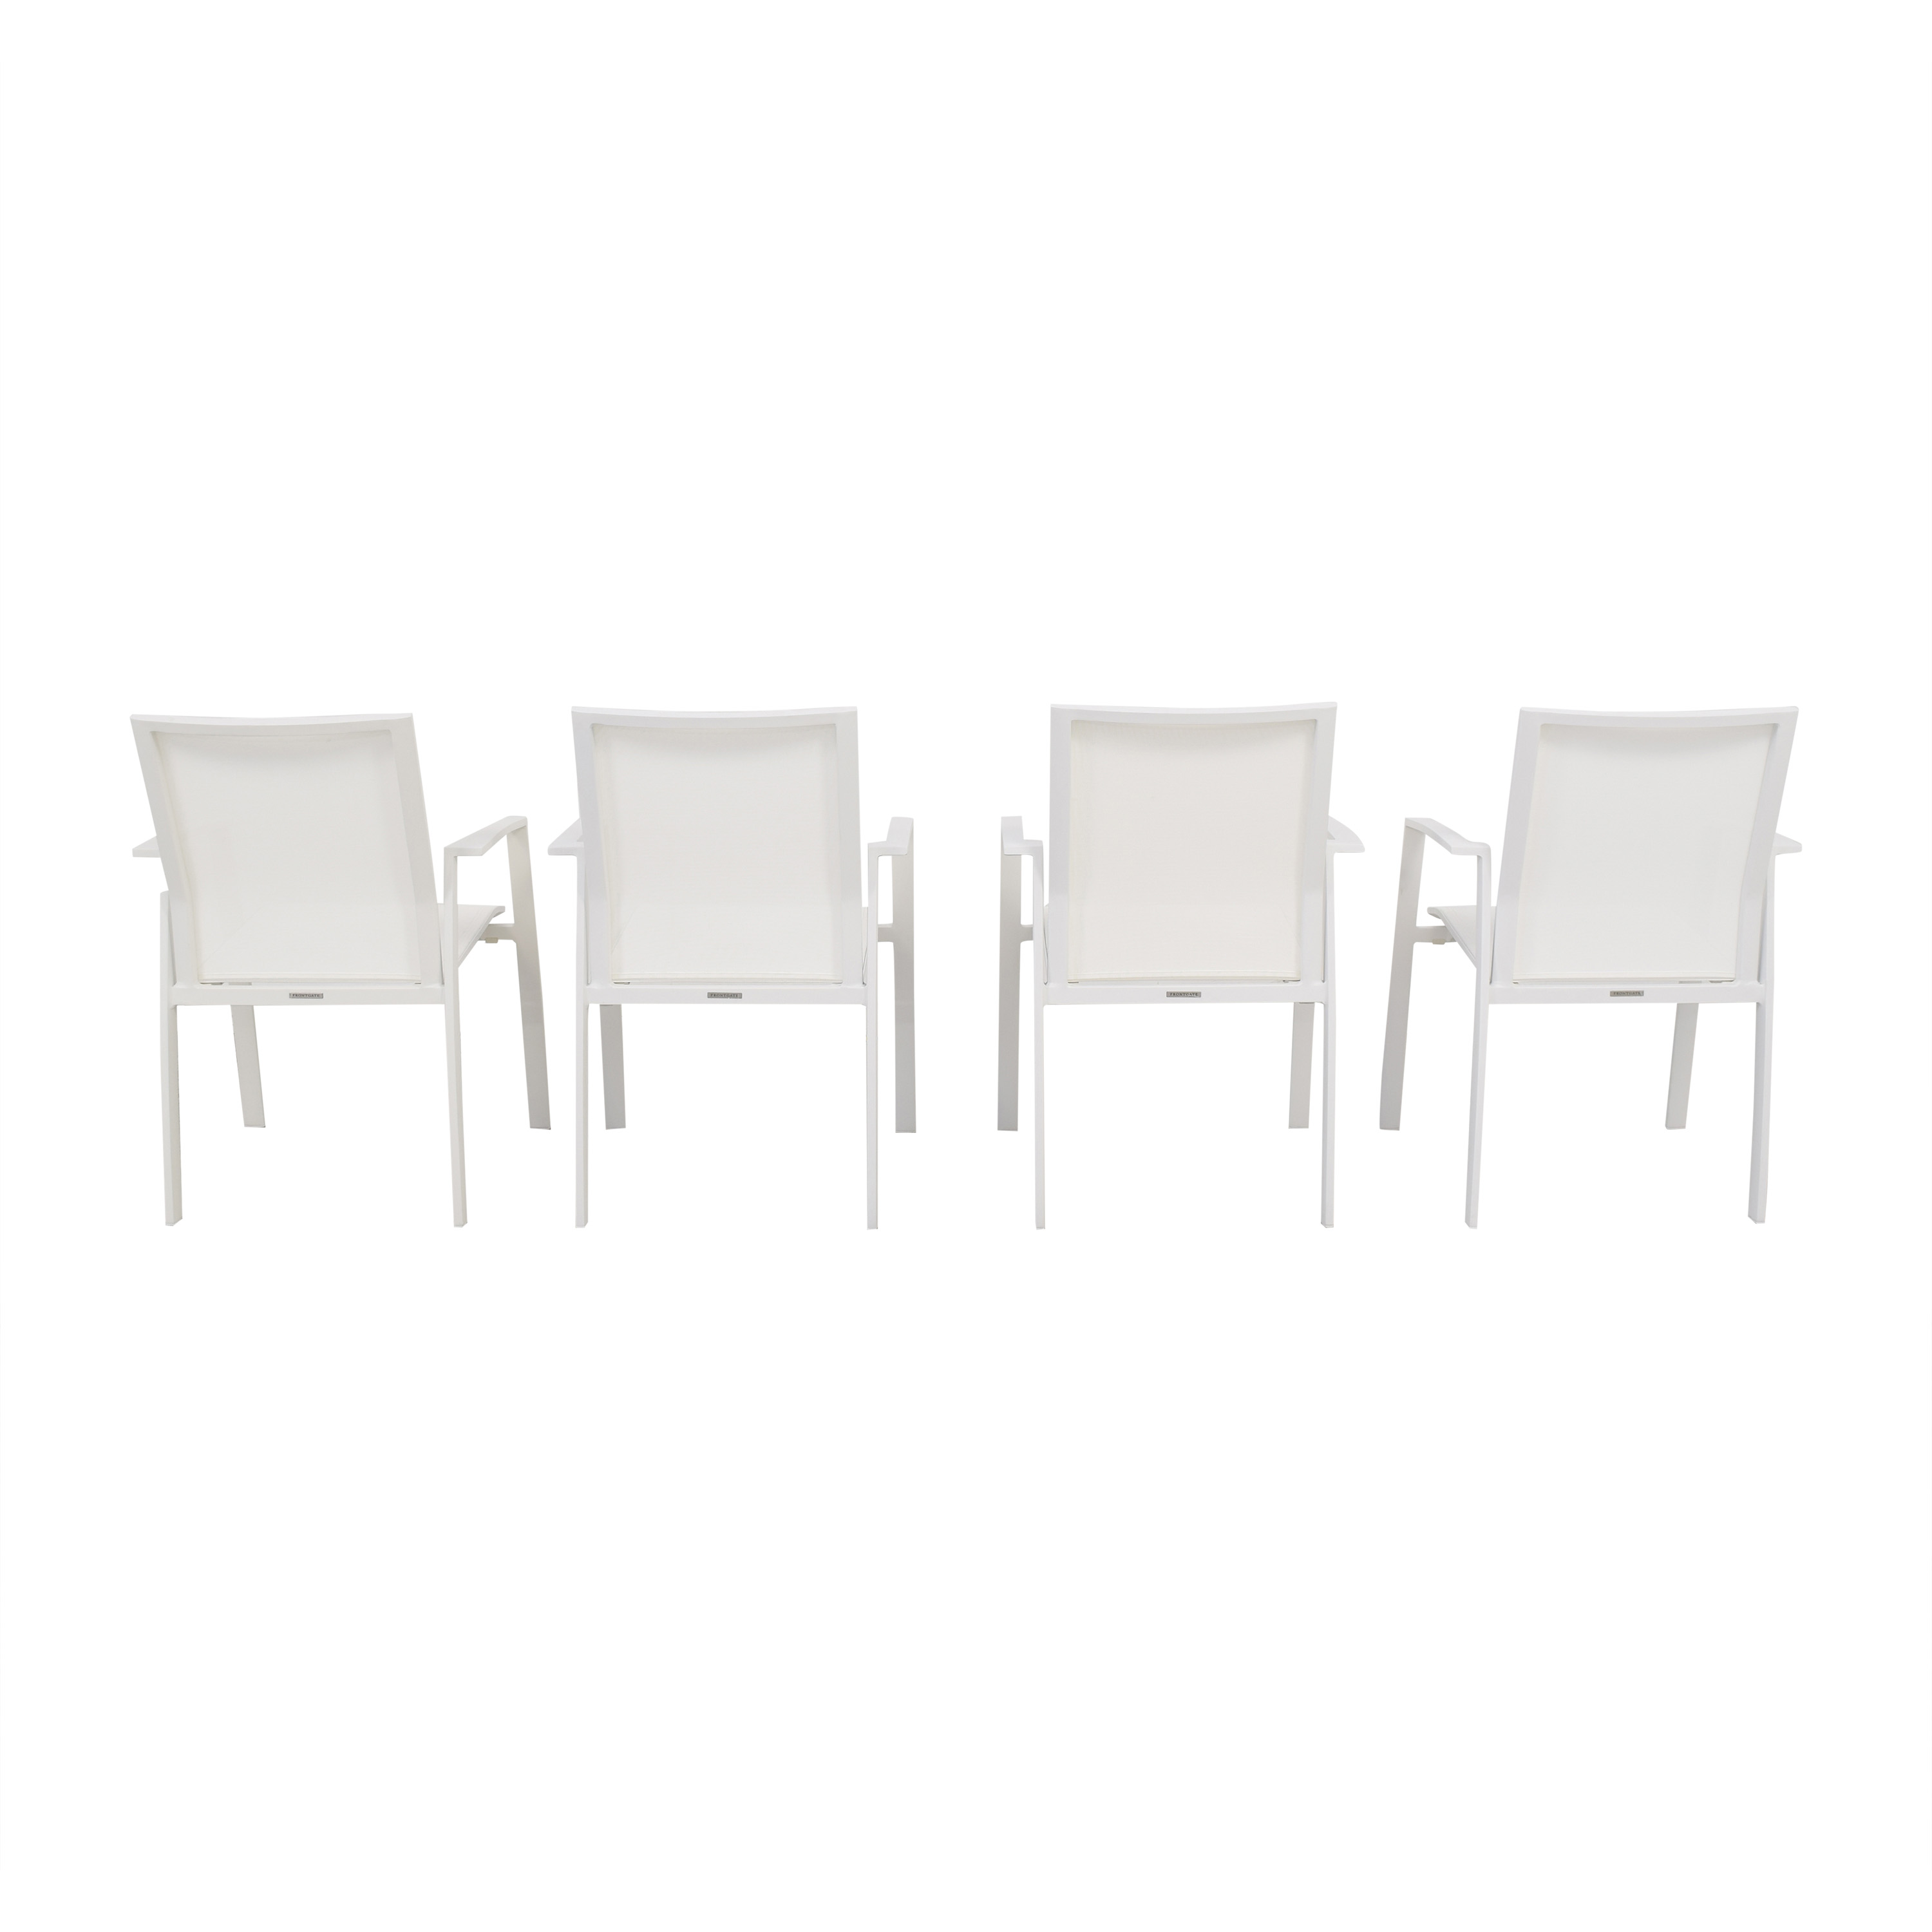 Frontgate Frontgate Newport Dining Chairs pa